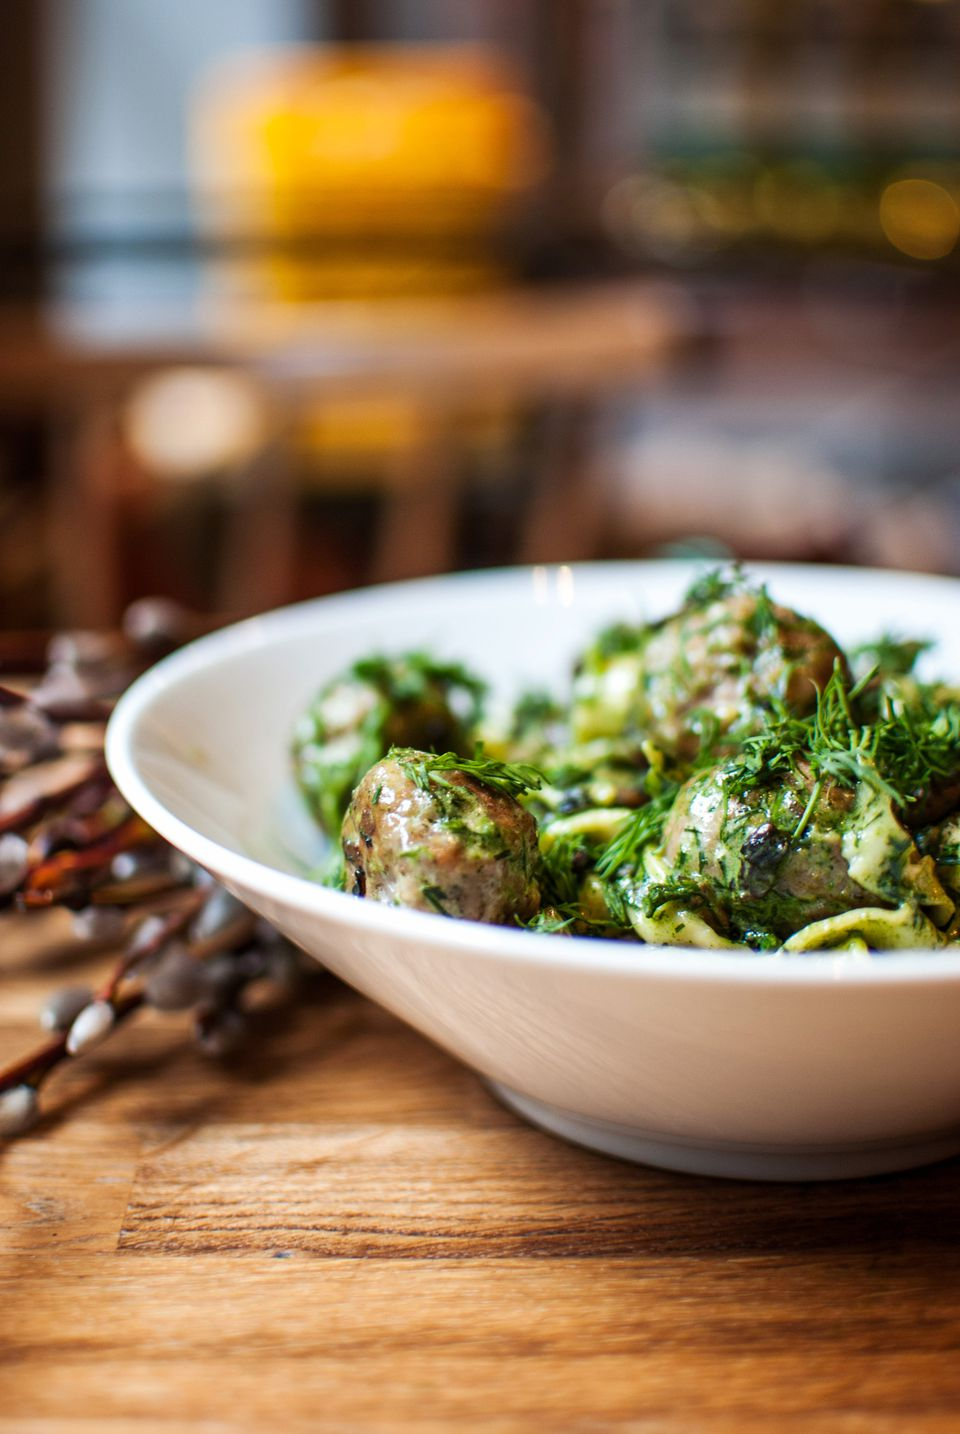 Pesto meatballs in a white bowl on a wooden surface